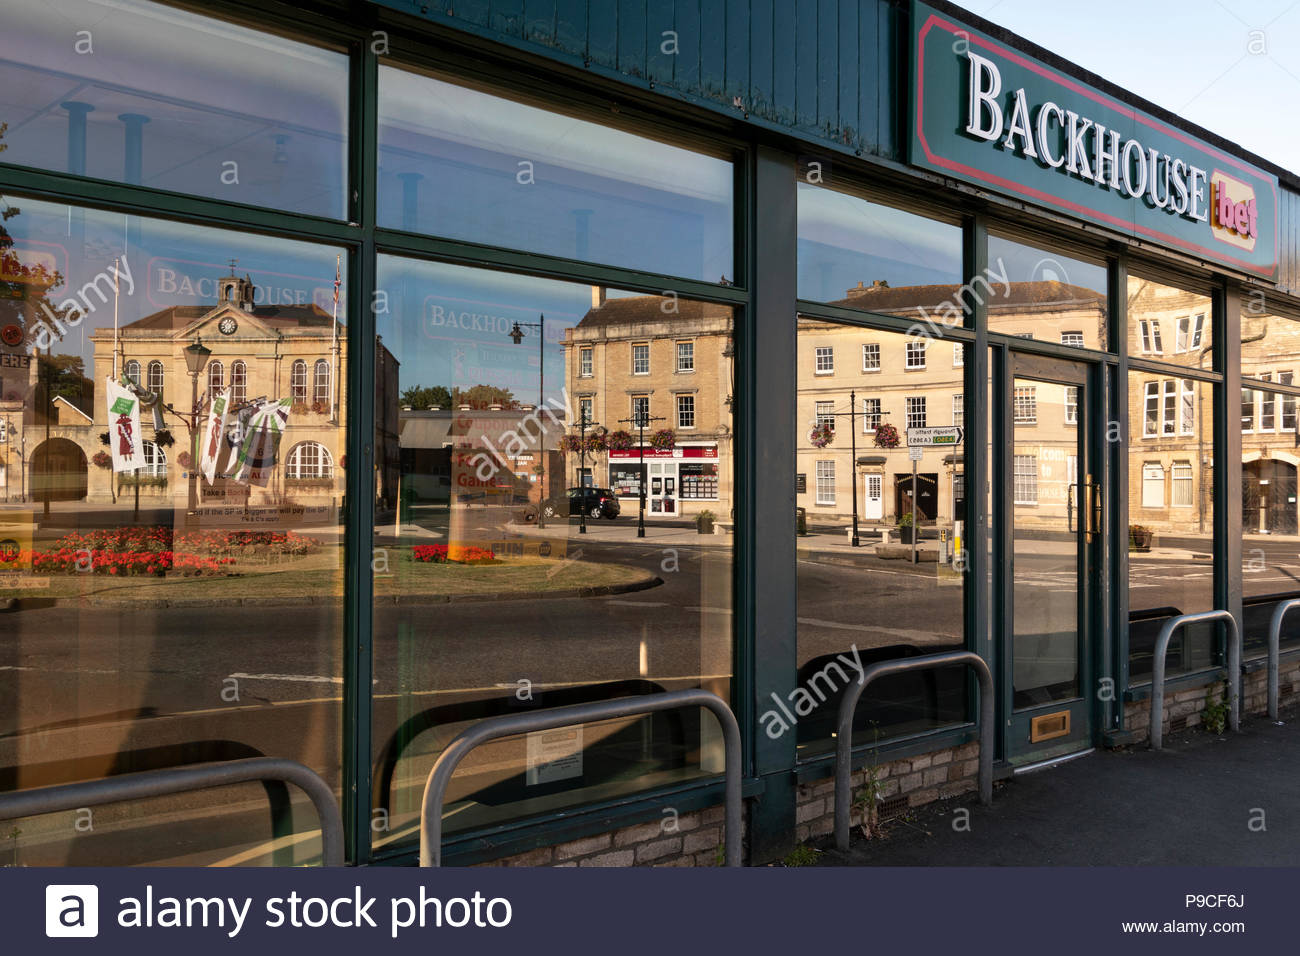 plate glass windows glass window sill view of the plate glass windows betting shop backhouse bet reflecting public offices plate glass windows stock photos images